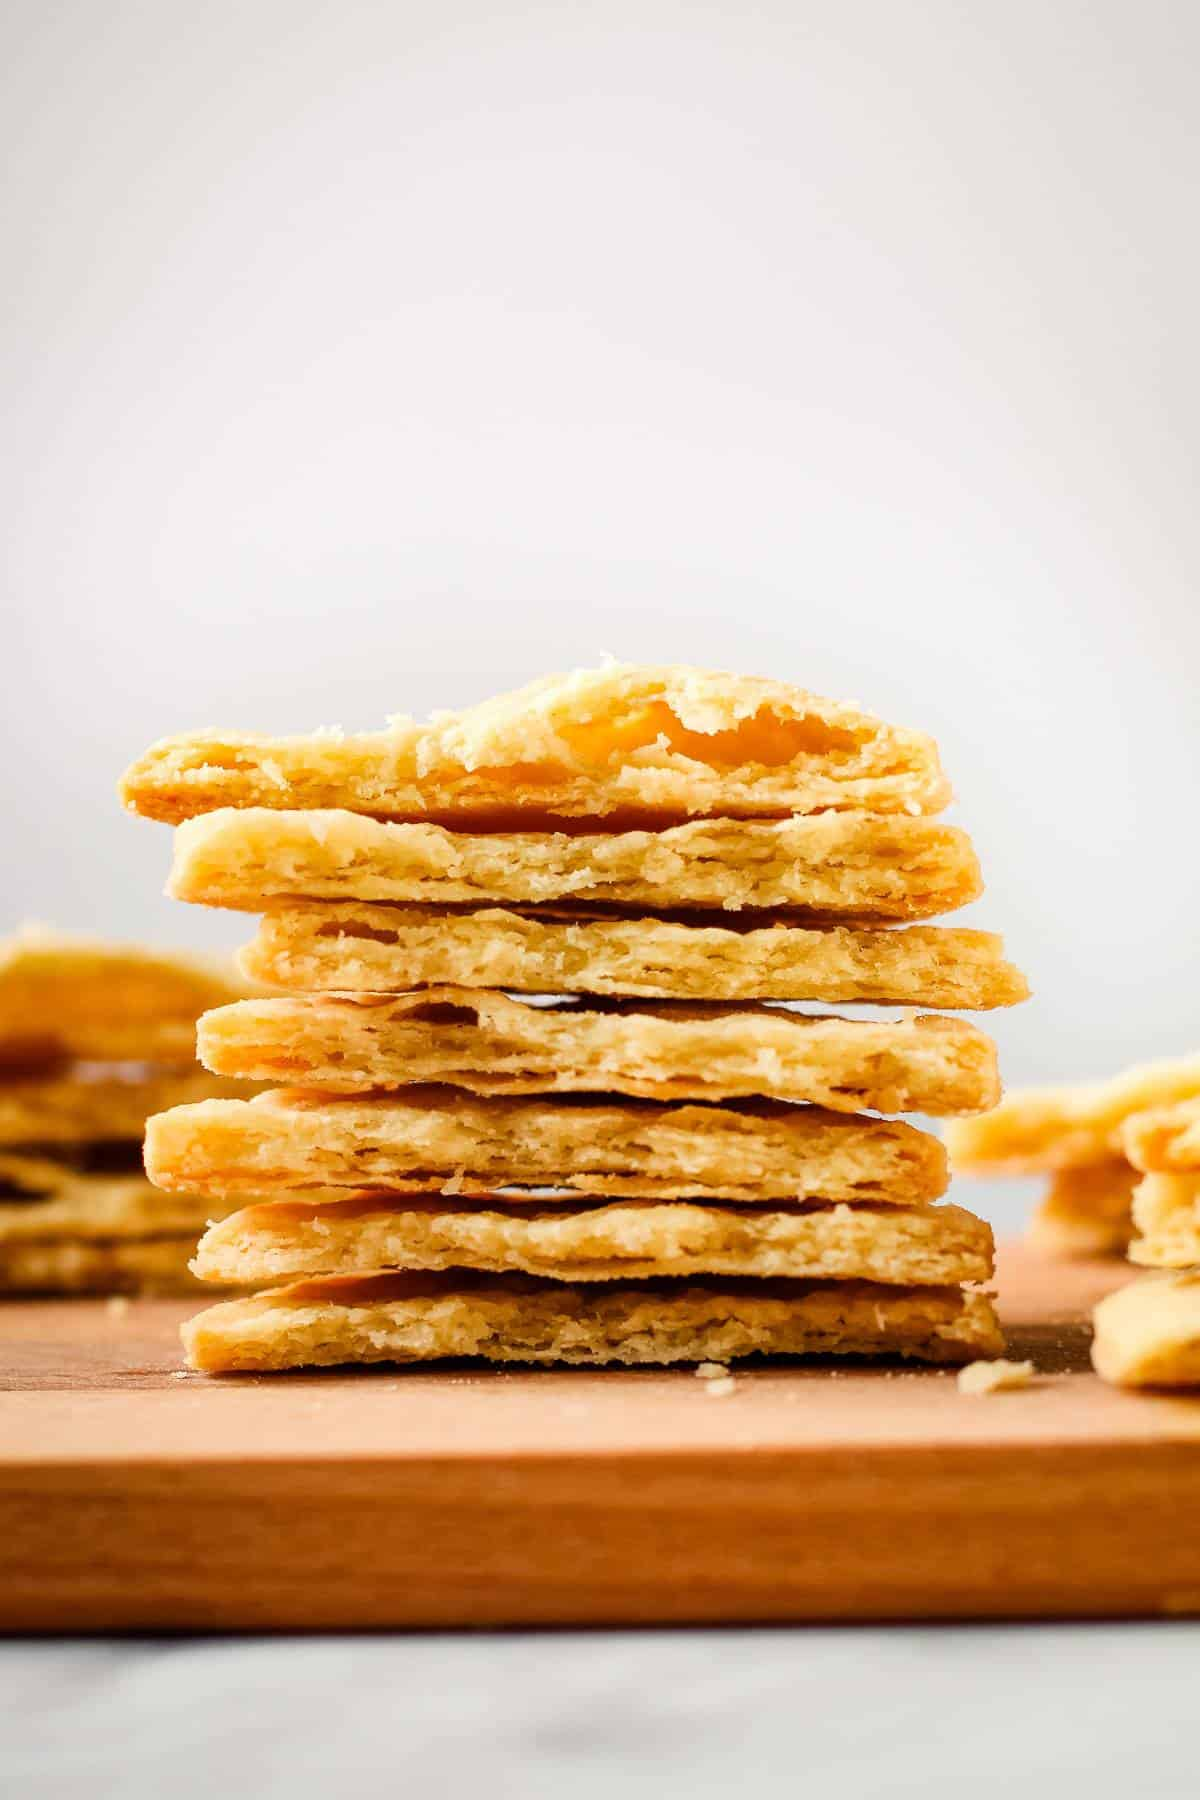 A stack of baked pate sucree pastries.